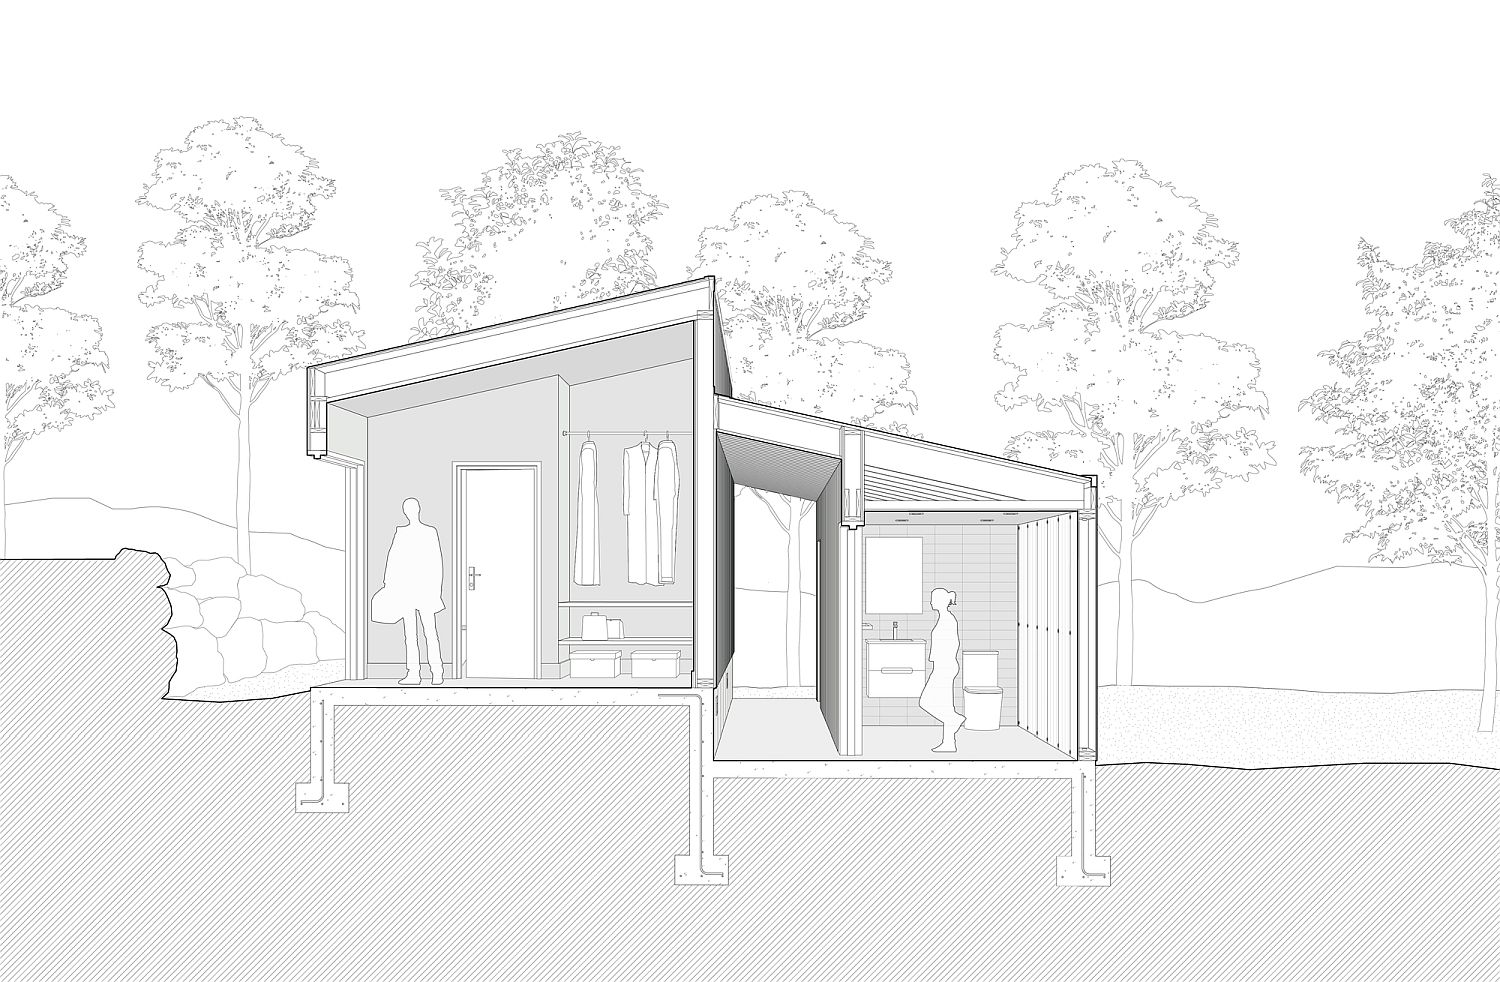 Design-plan-of-the-small-pavilion-in-woods